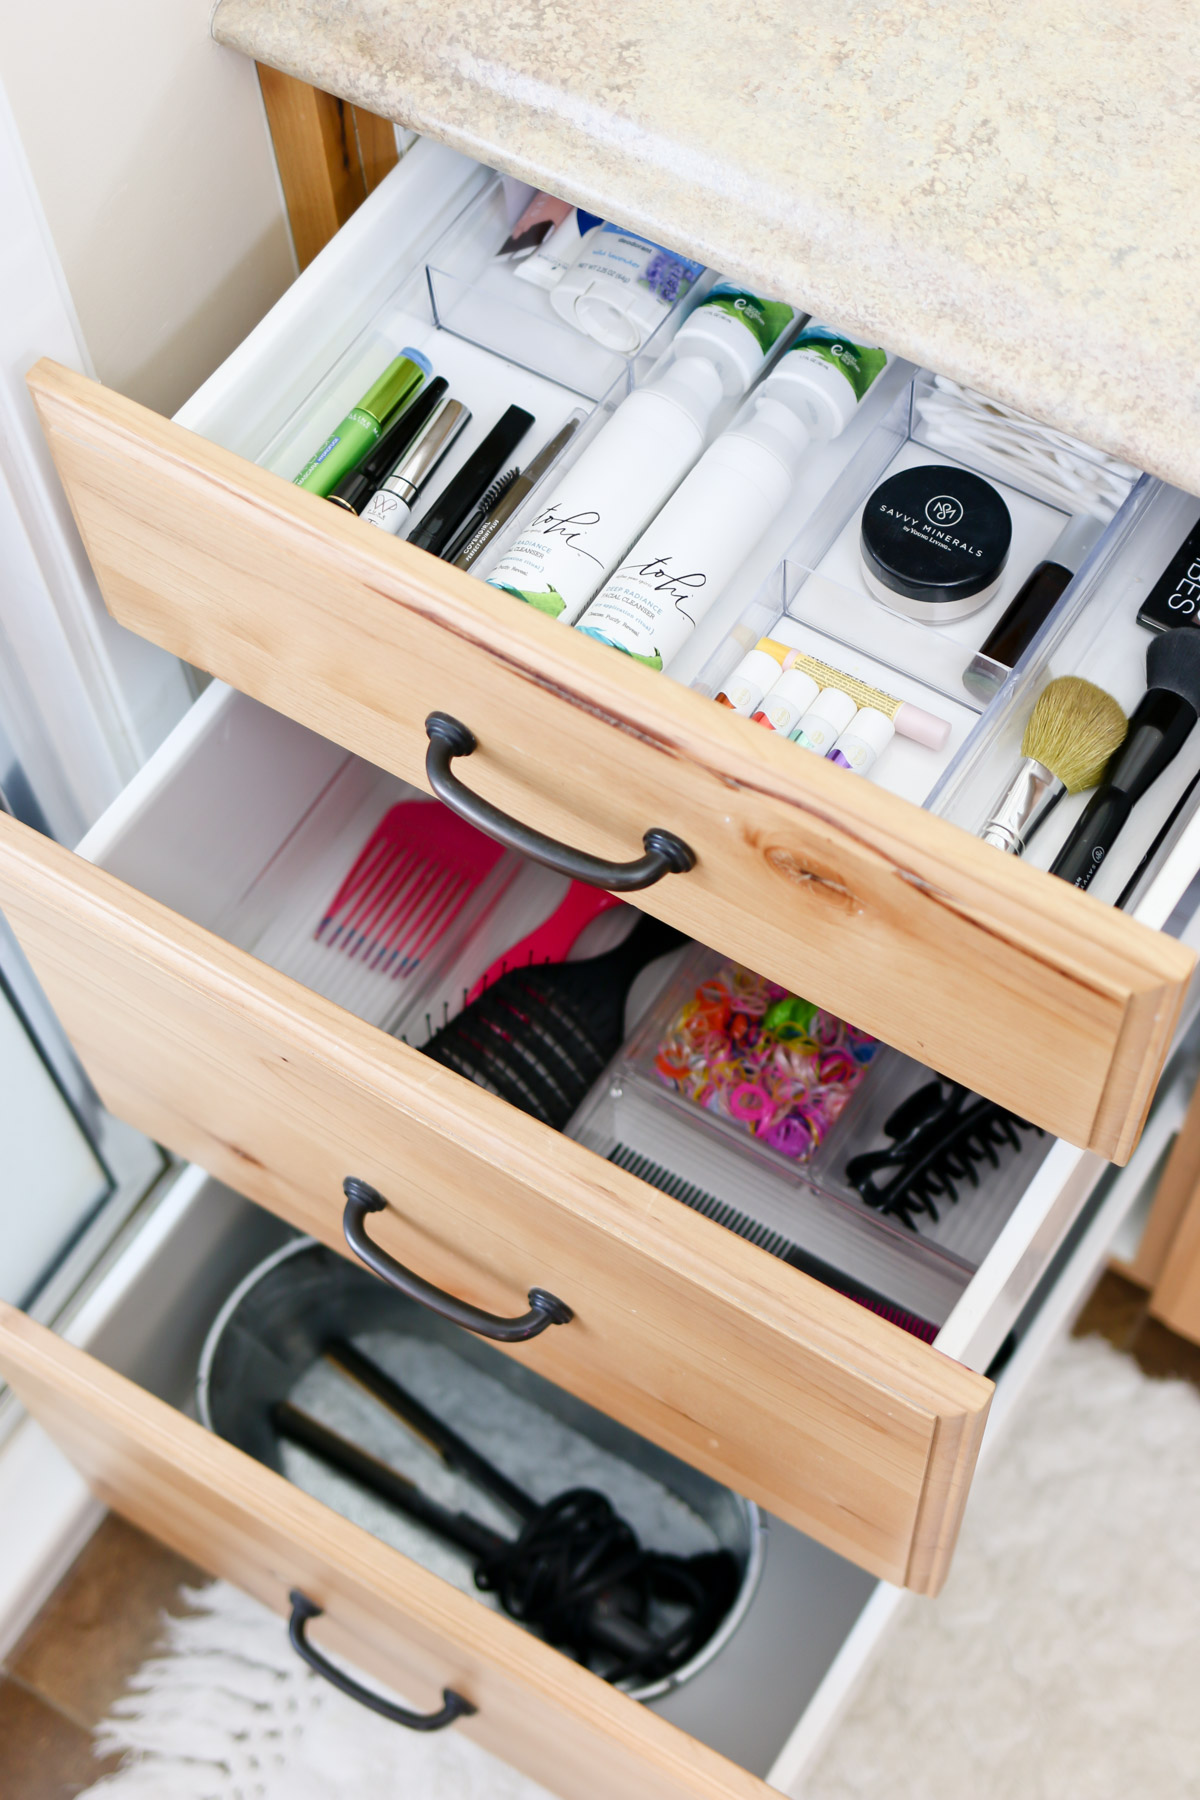 Supplies, tips and ideas for organizing bathroom drawers and cupboards.